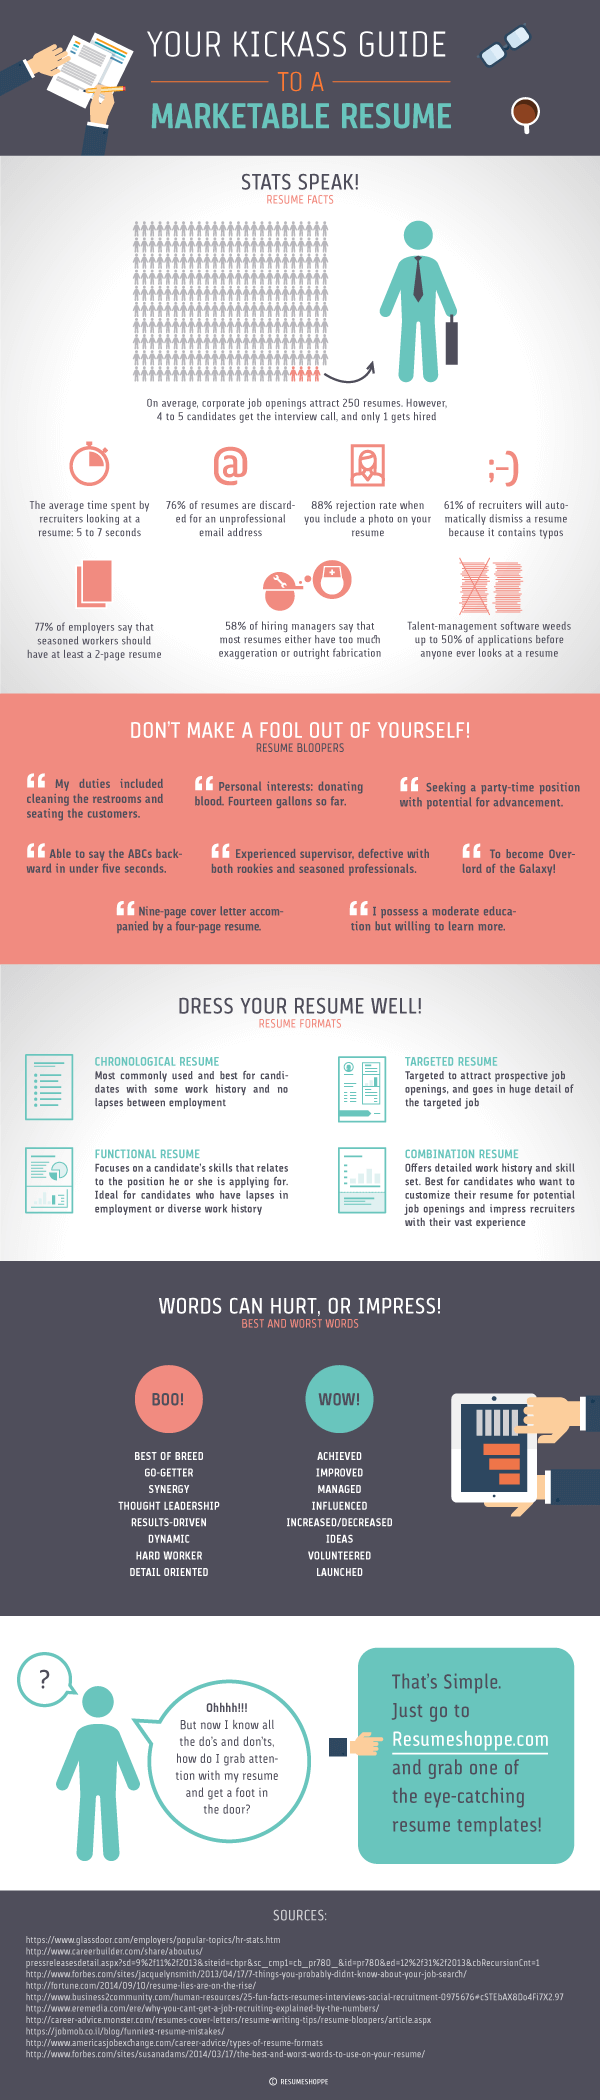 Guidelines For A Resume Unique Your Kickass Guide To A Marketable Resume Infographic  Perfect .